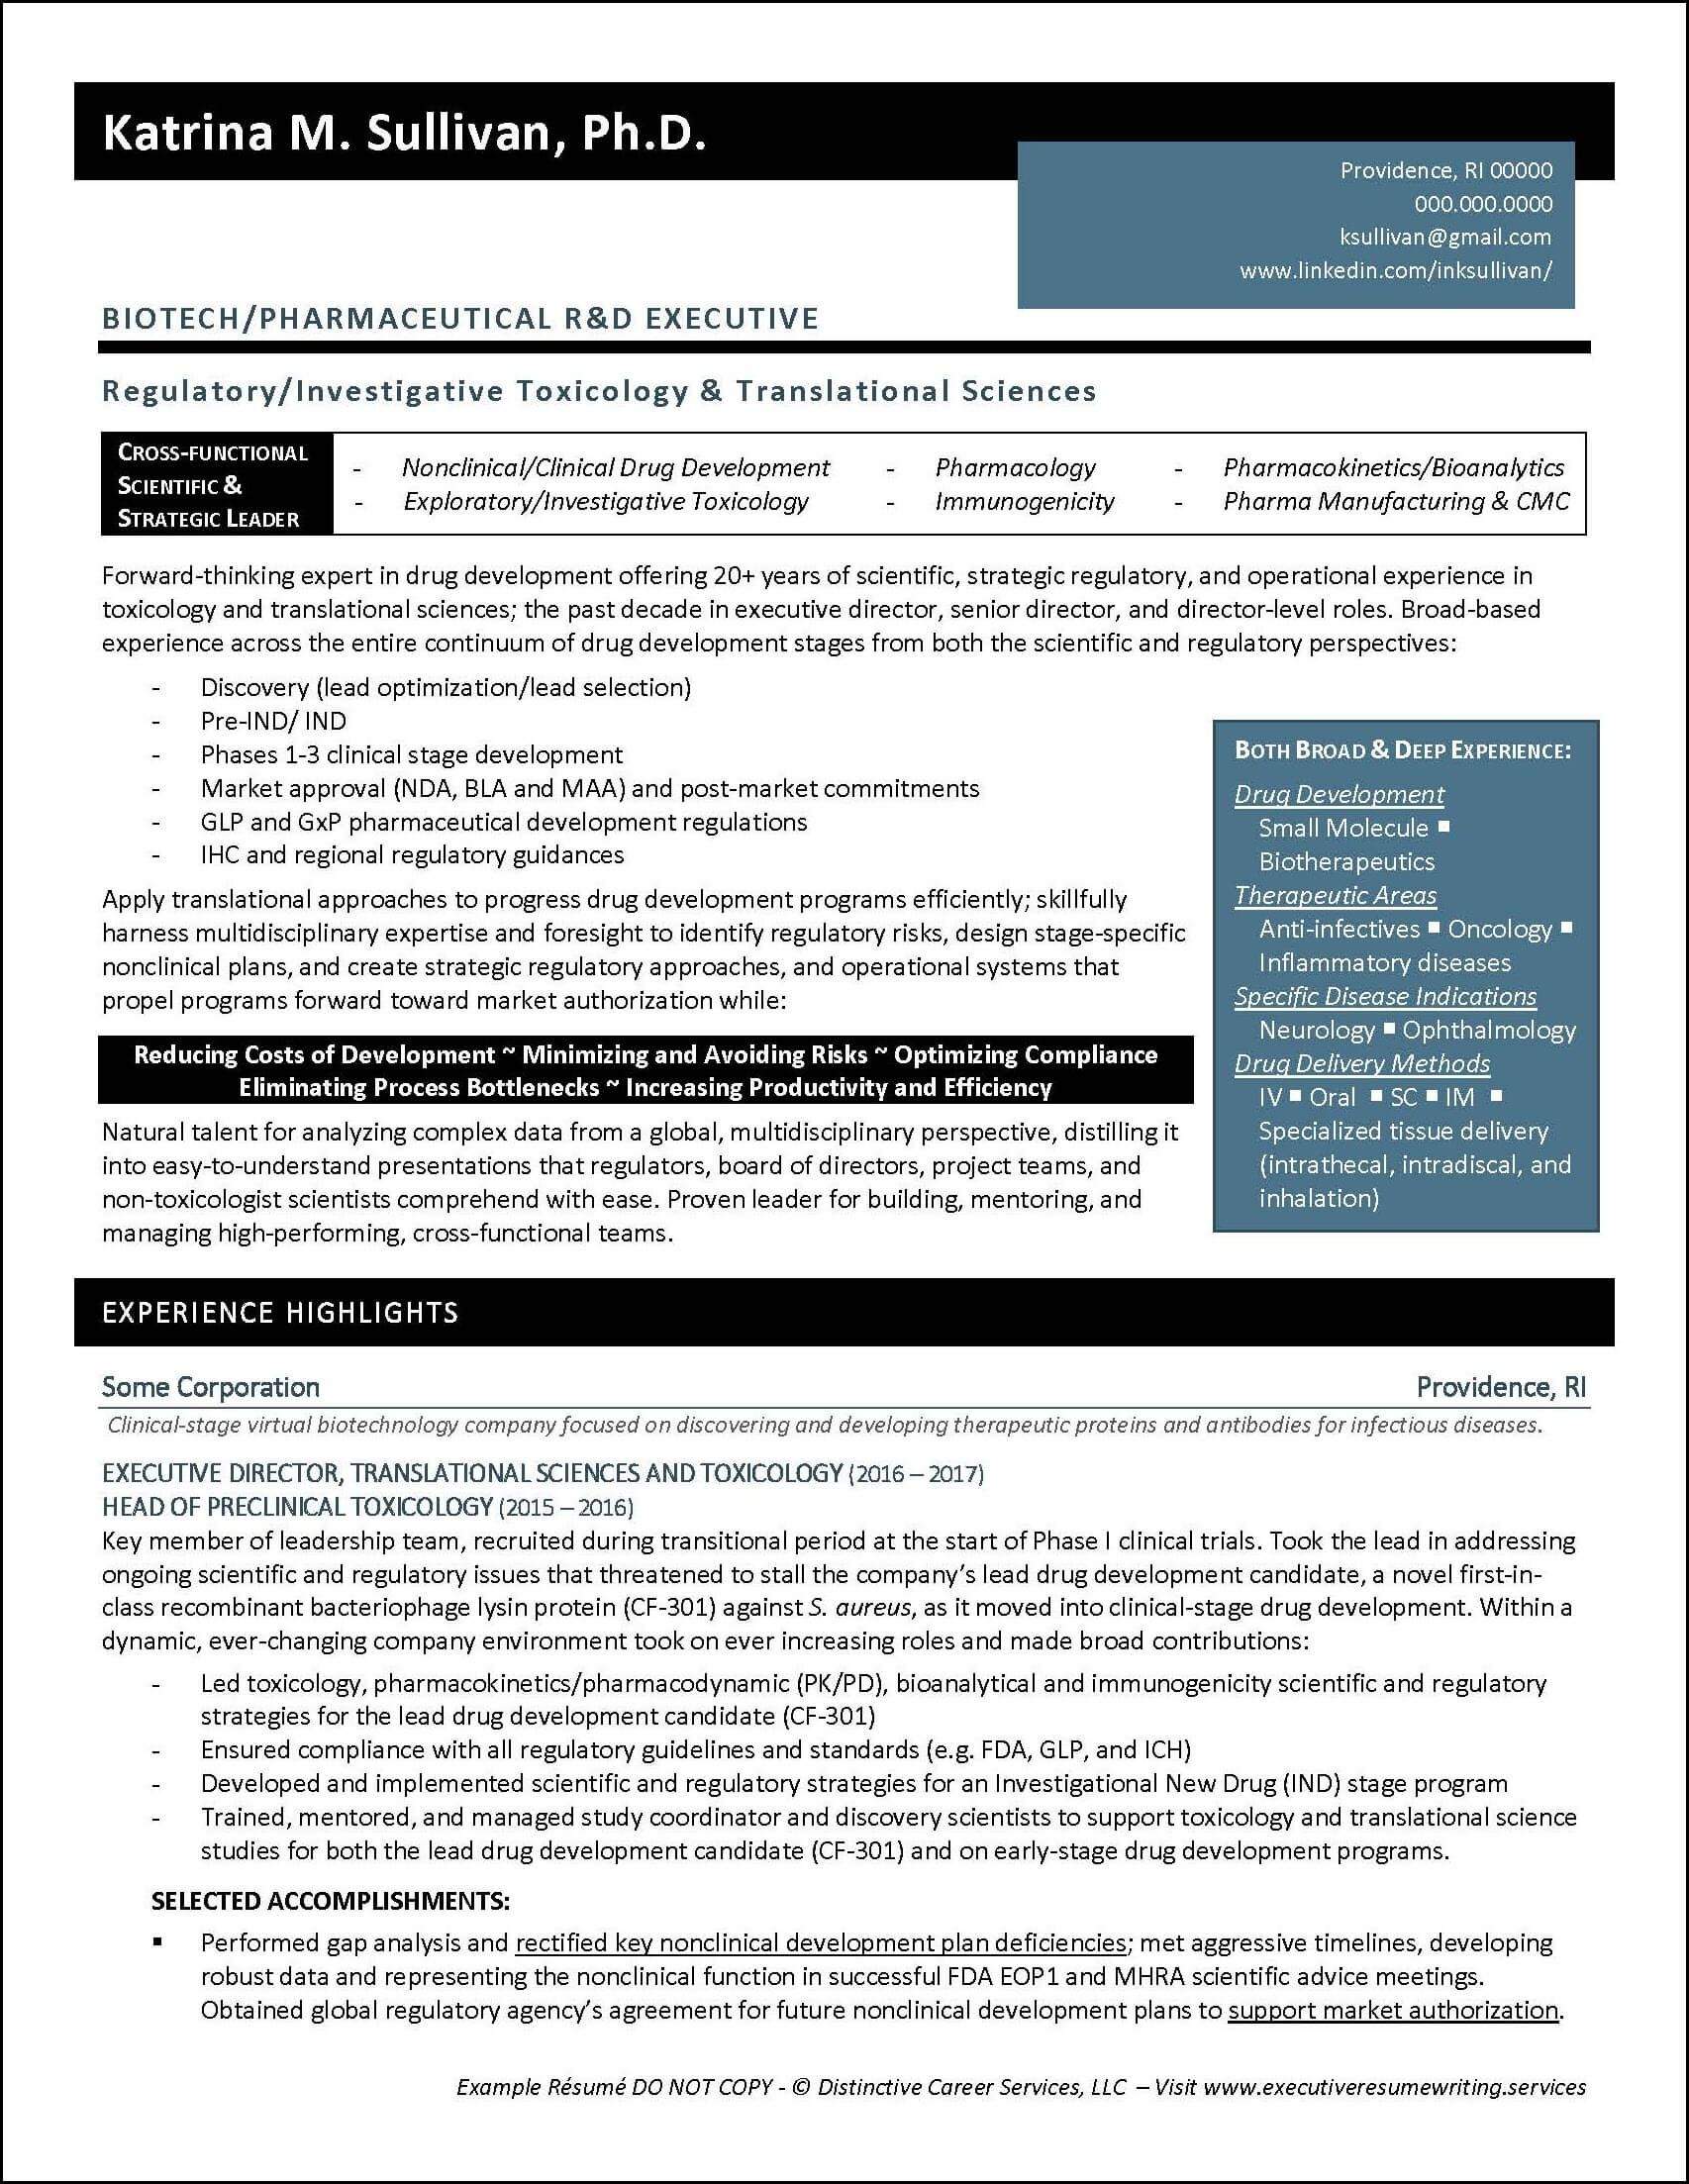 Example Executive Resume Biotech R D Pg1 Executive Resume Infographic Resume Resume Examples